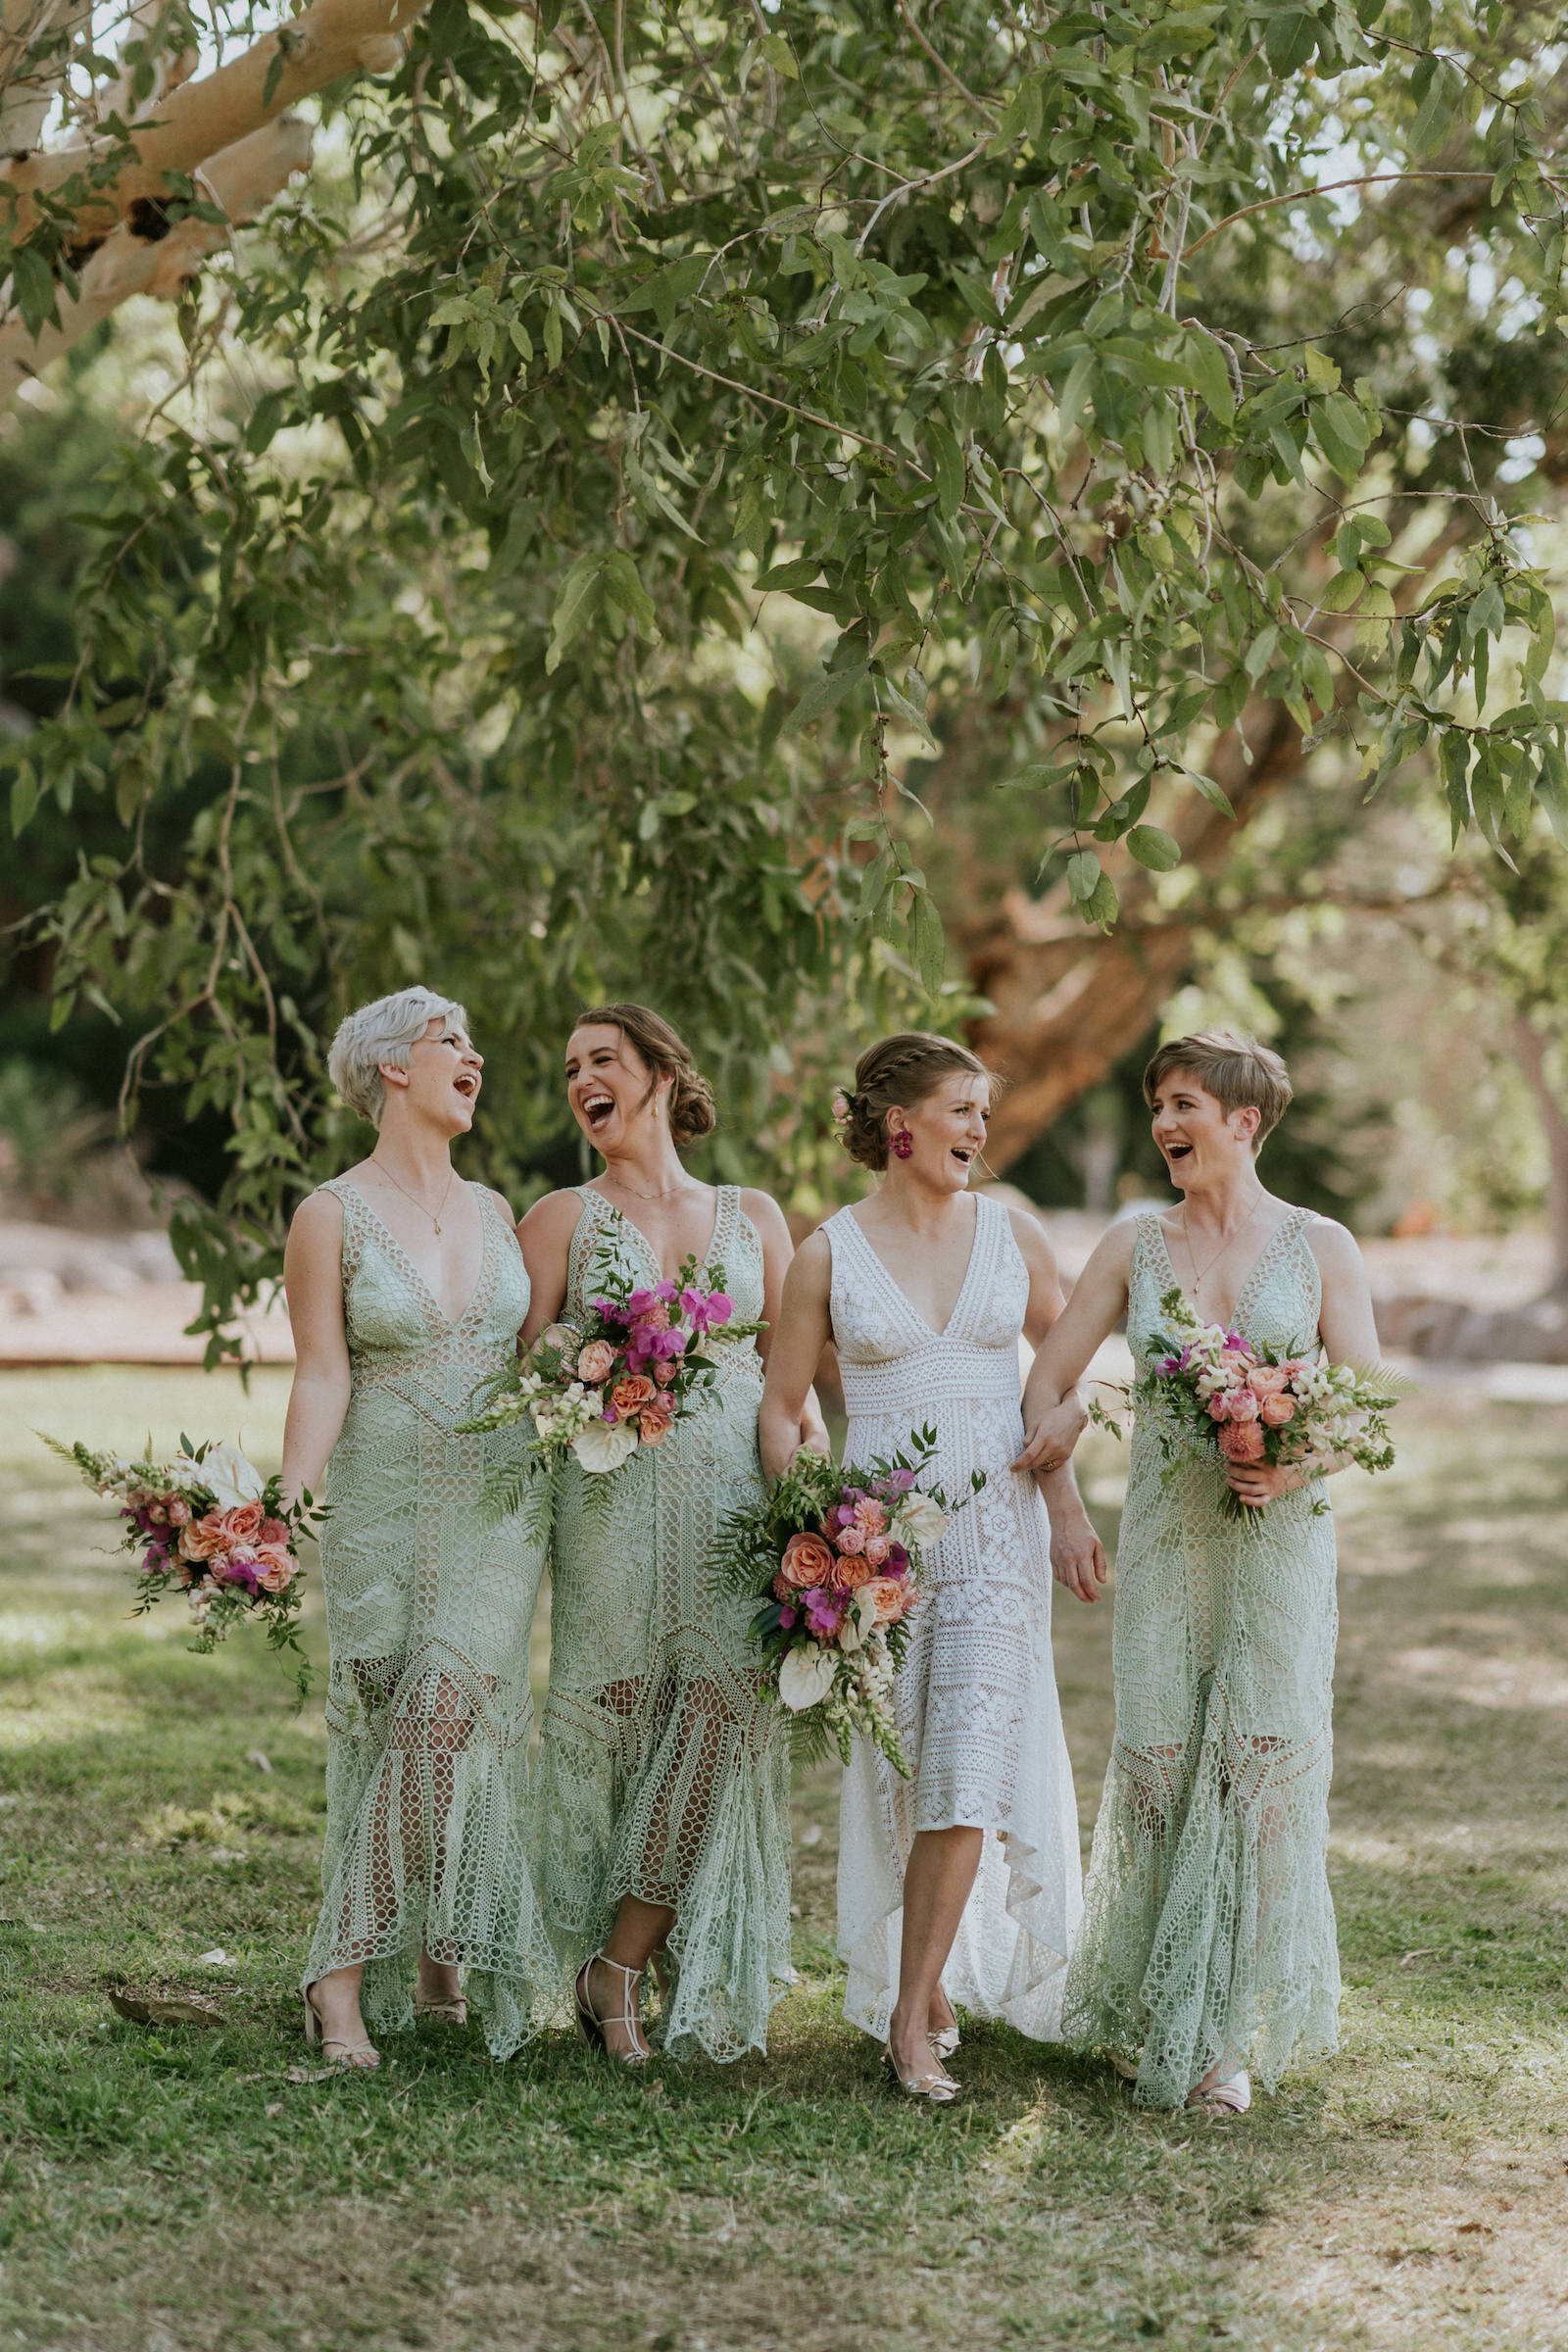 Beija Flor bridesmaids tropical flower bouquets, photo by James Day